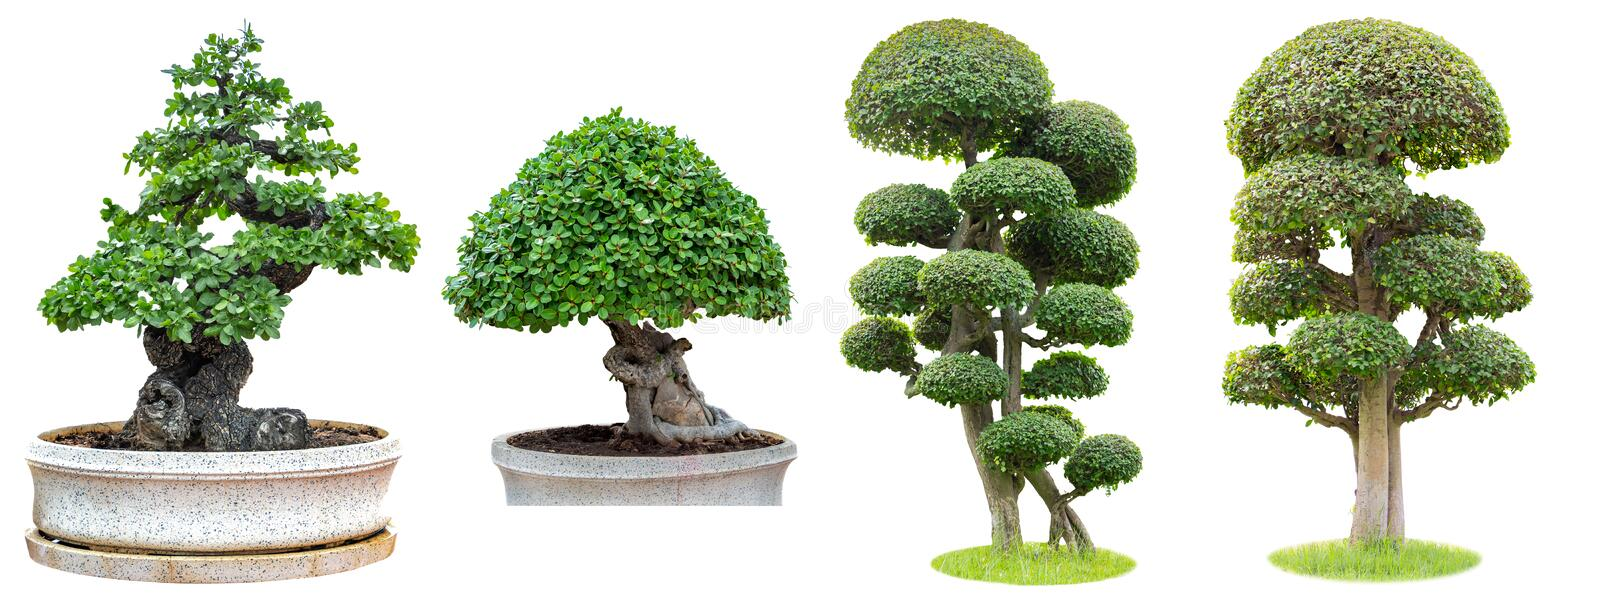 Bonsai trees isolated on white background. Its shrub is grown in a pot or ornamental tree in the garden. N royalty free stock photo